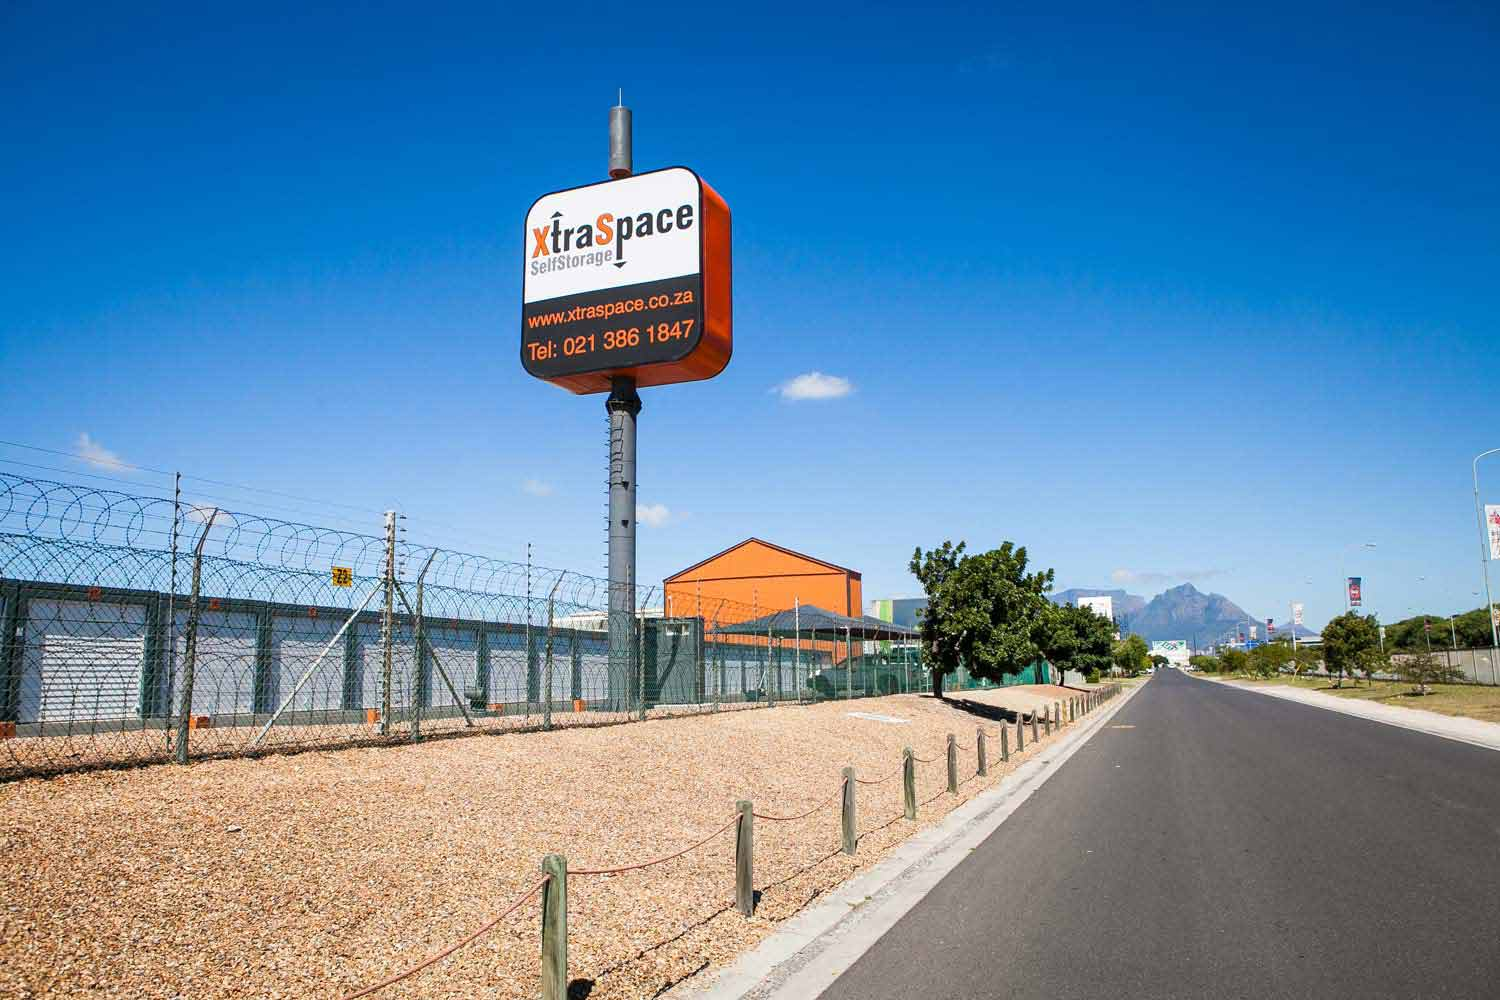 Street view of the XtraSpace Cape Town Airport self storage facility